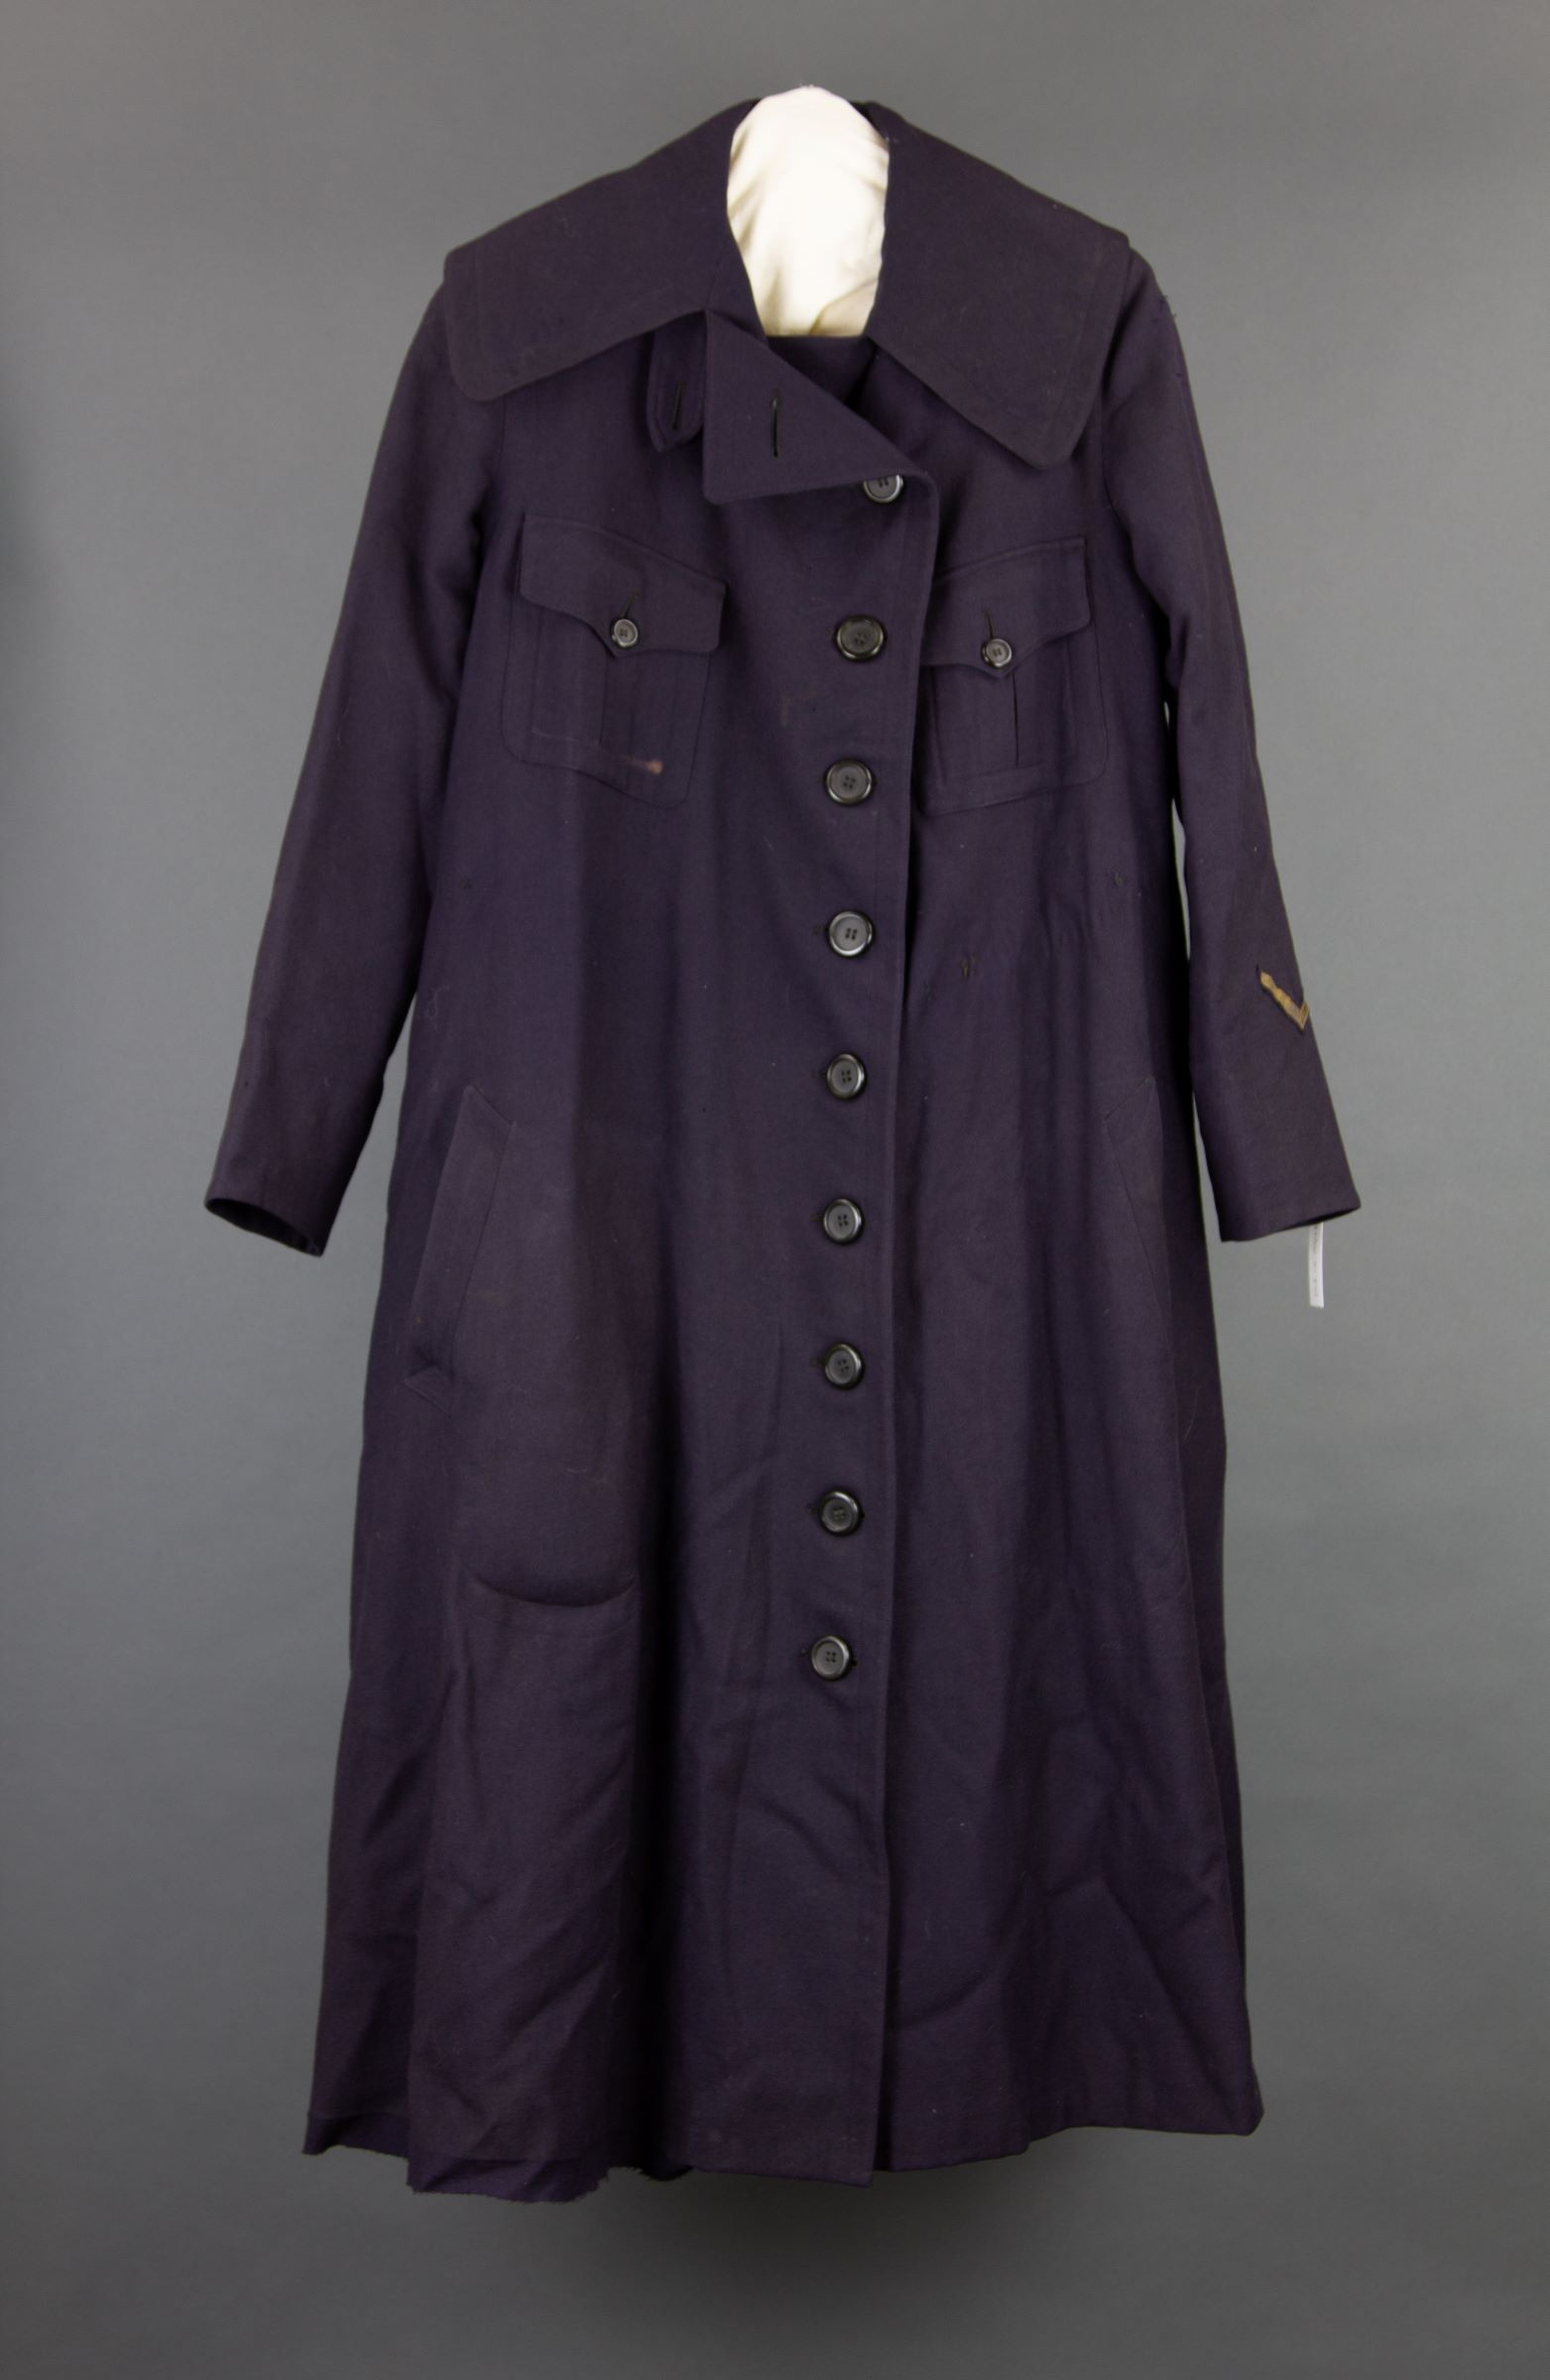 Image of Coat.